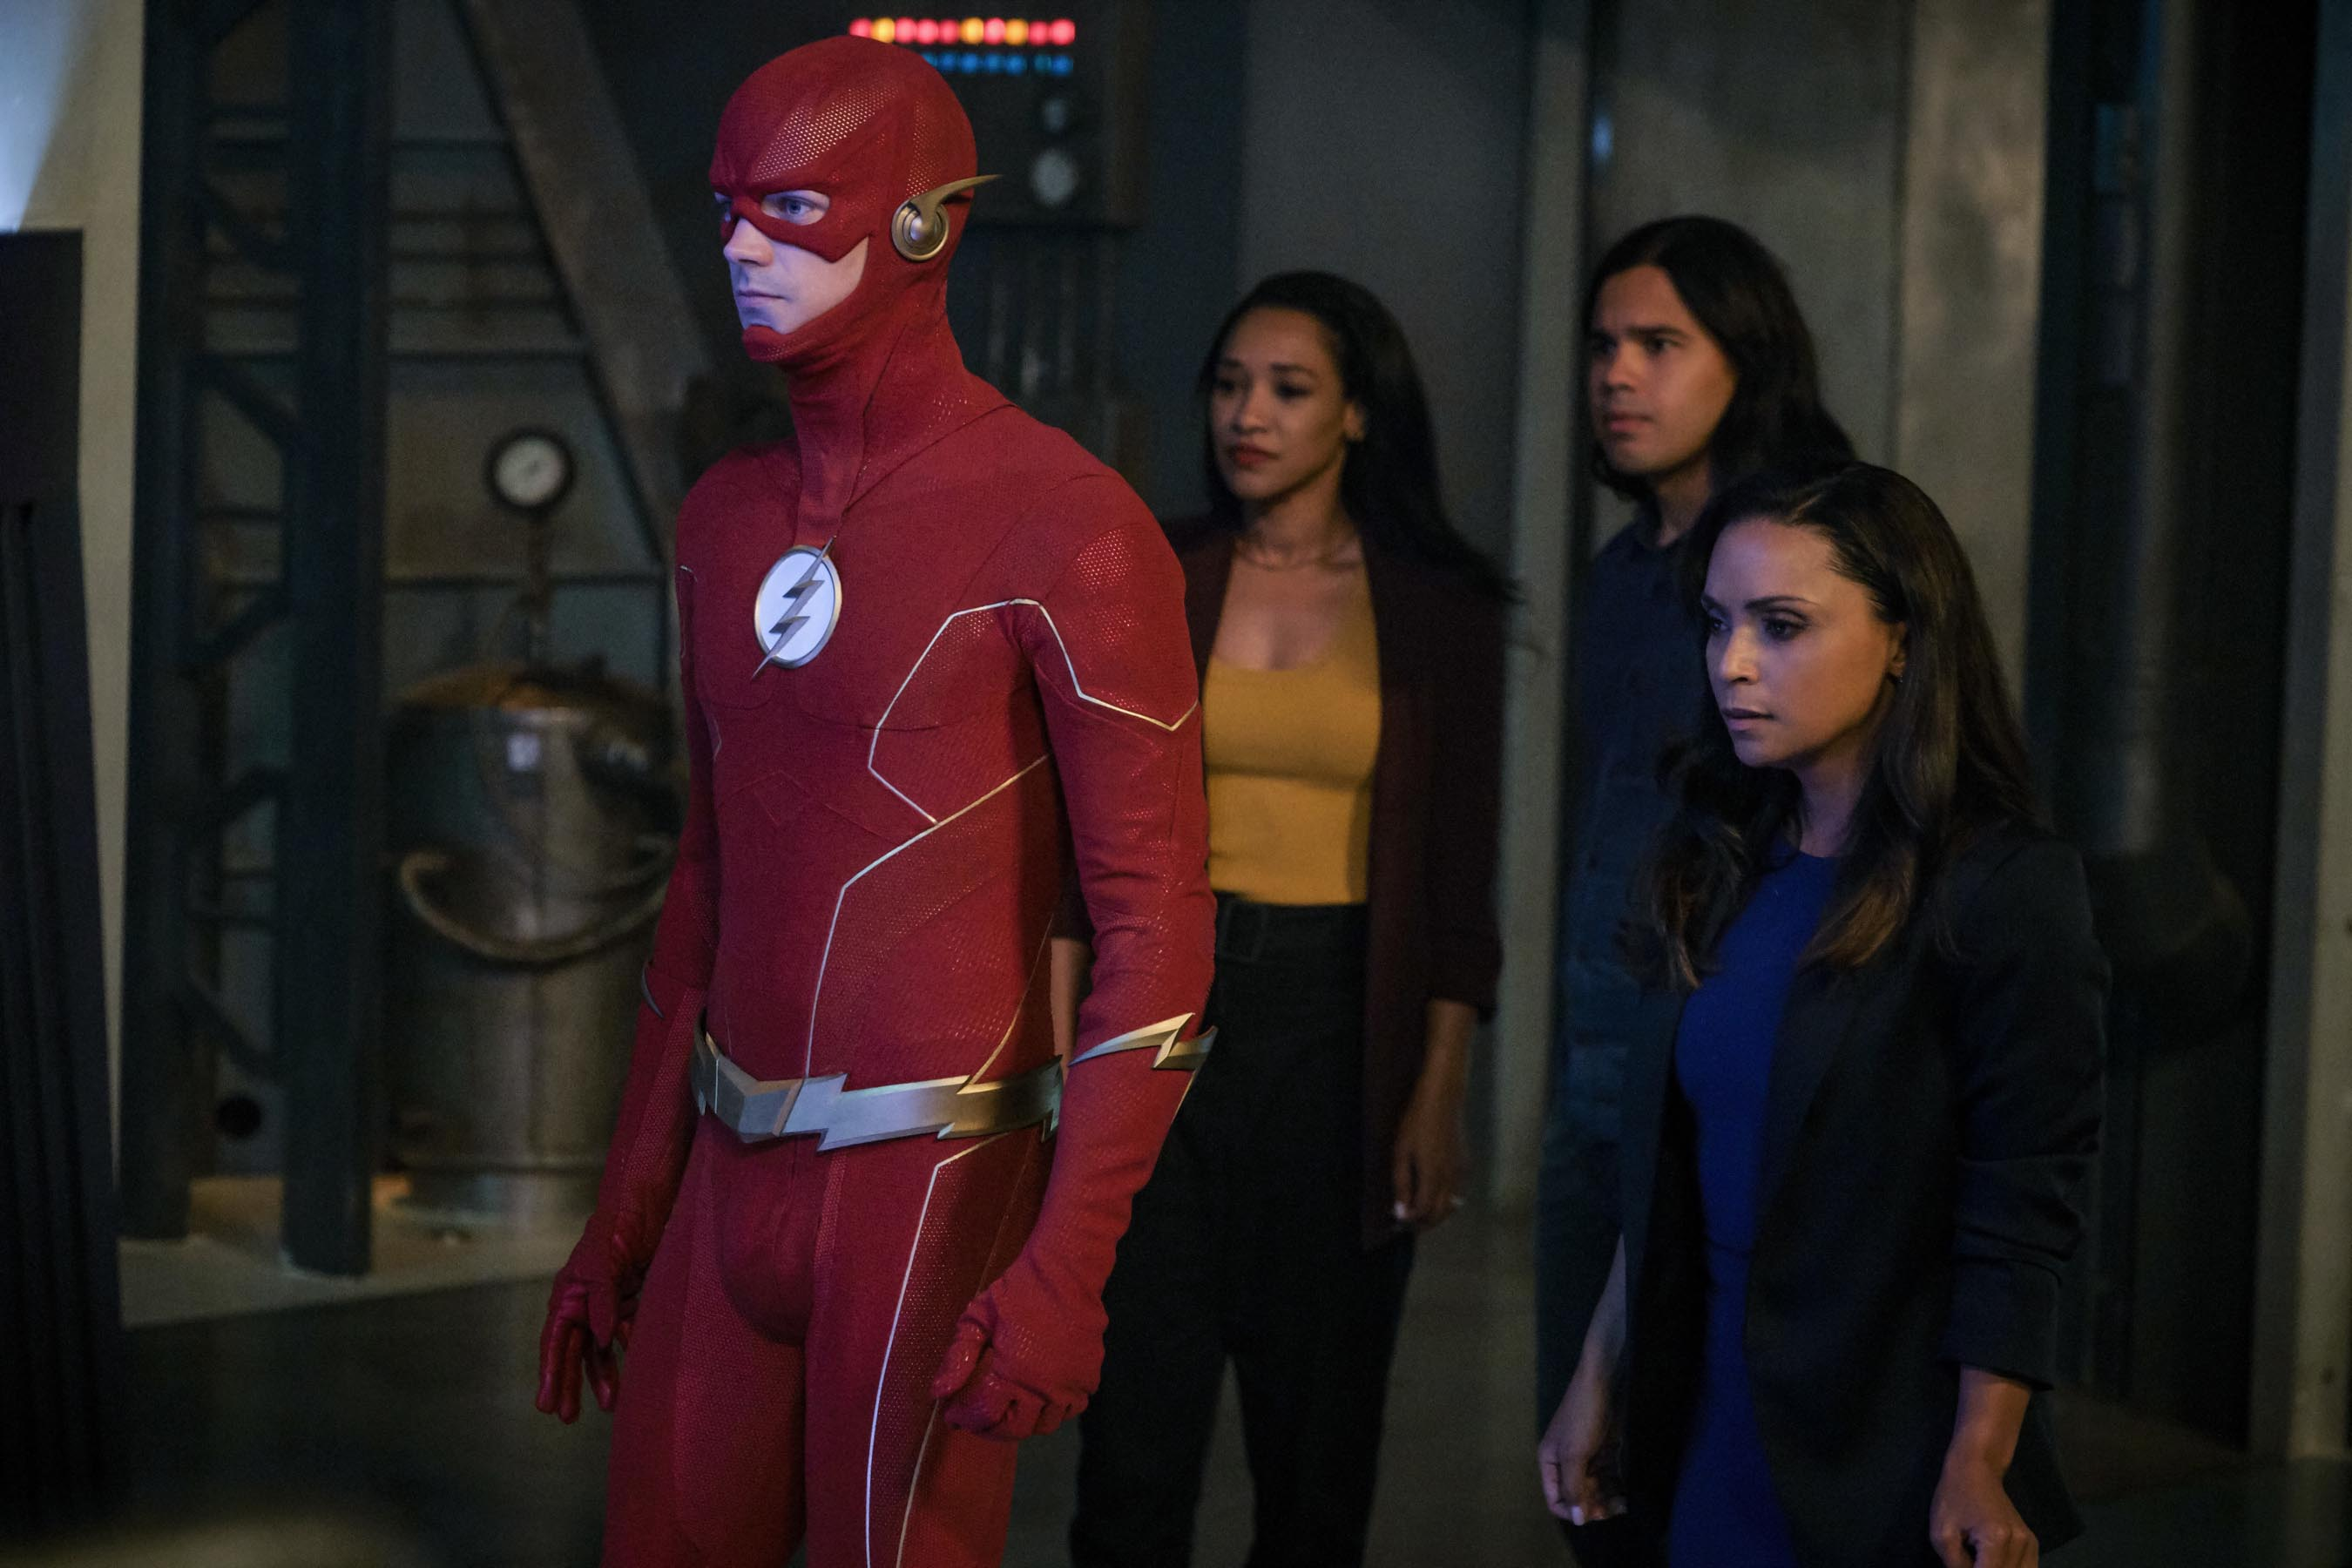 The Flash Season 6 Premiere: Is This Show Starting to Show Its Age?